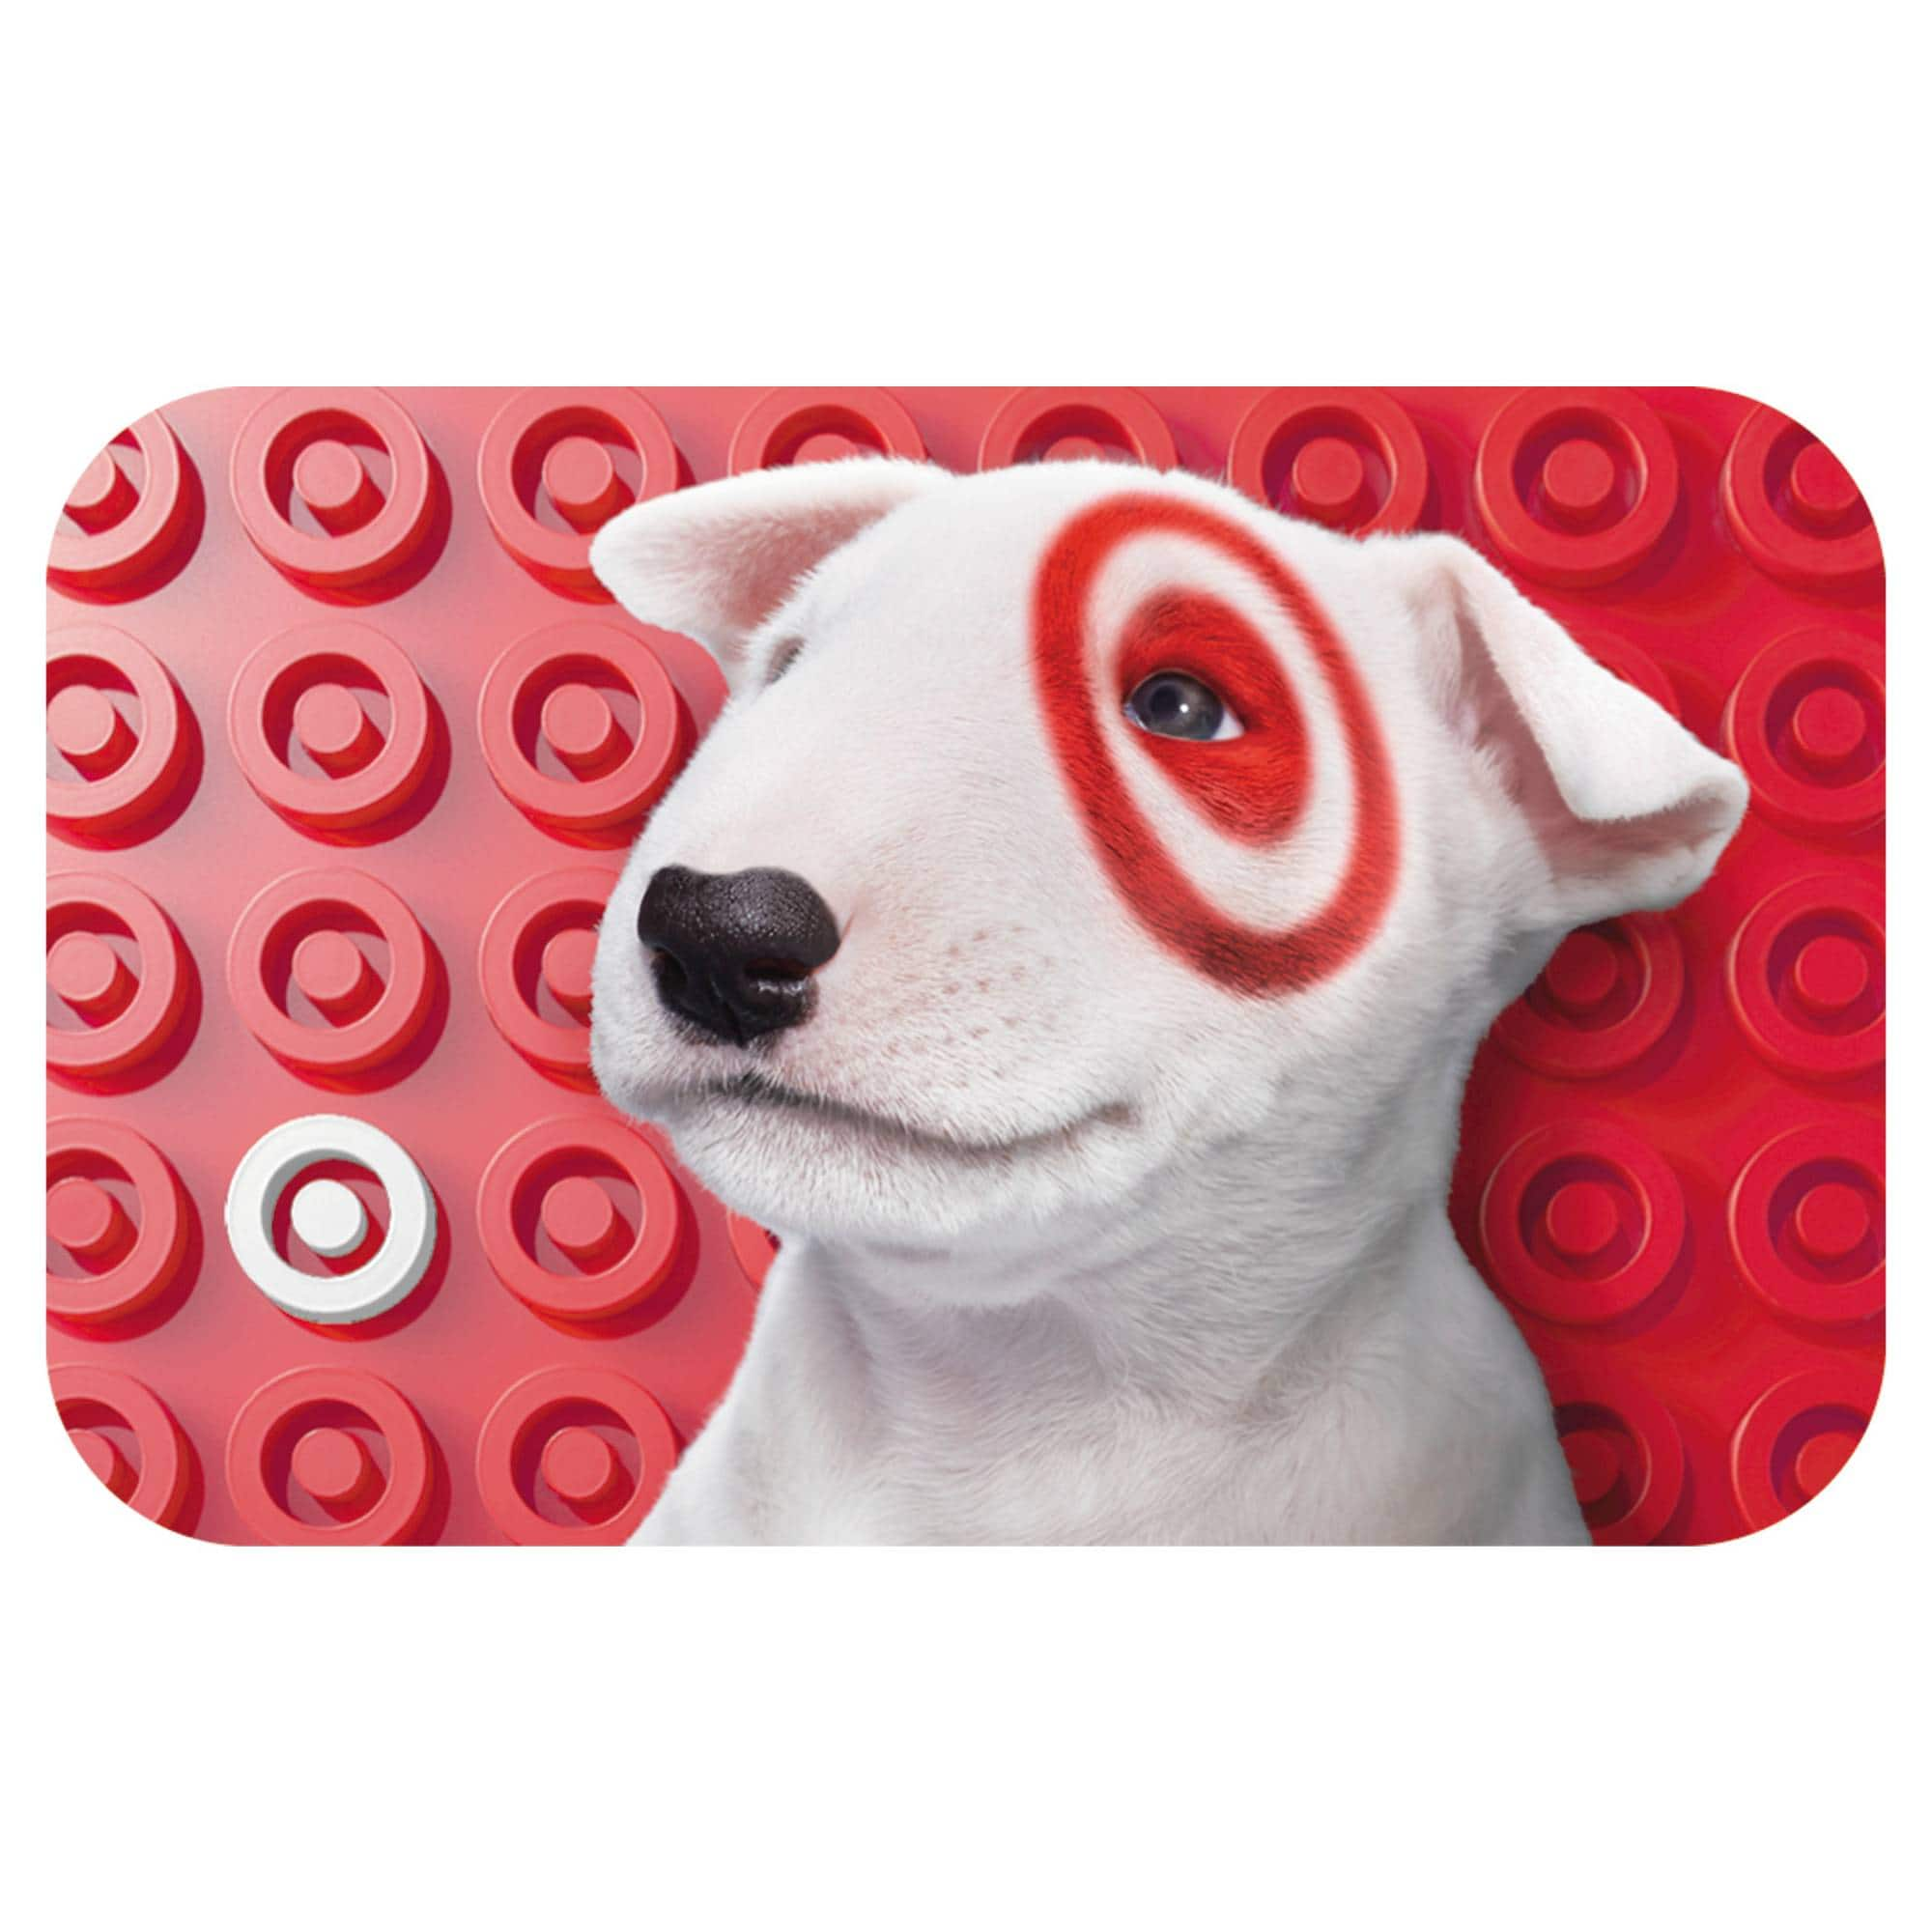 Target $5 gift card for 6250 points (half off) at Cricket Rewards ...